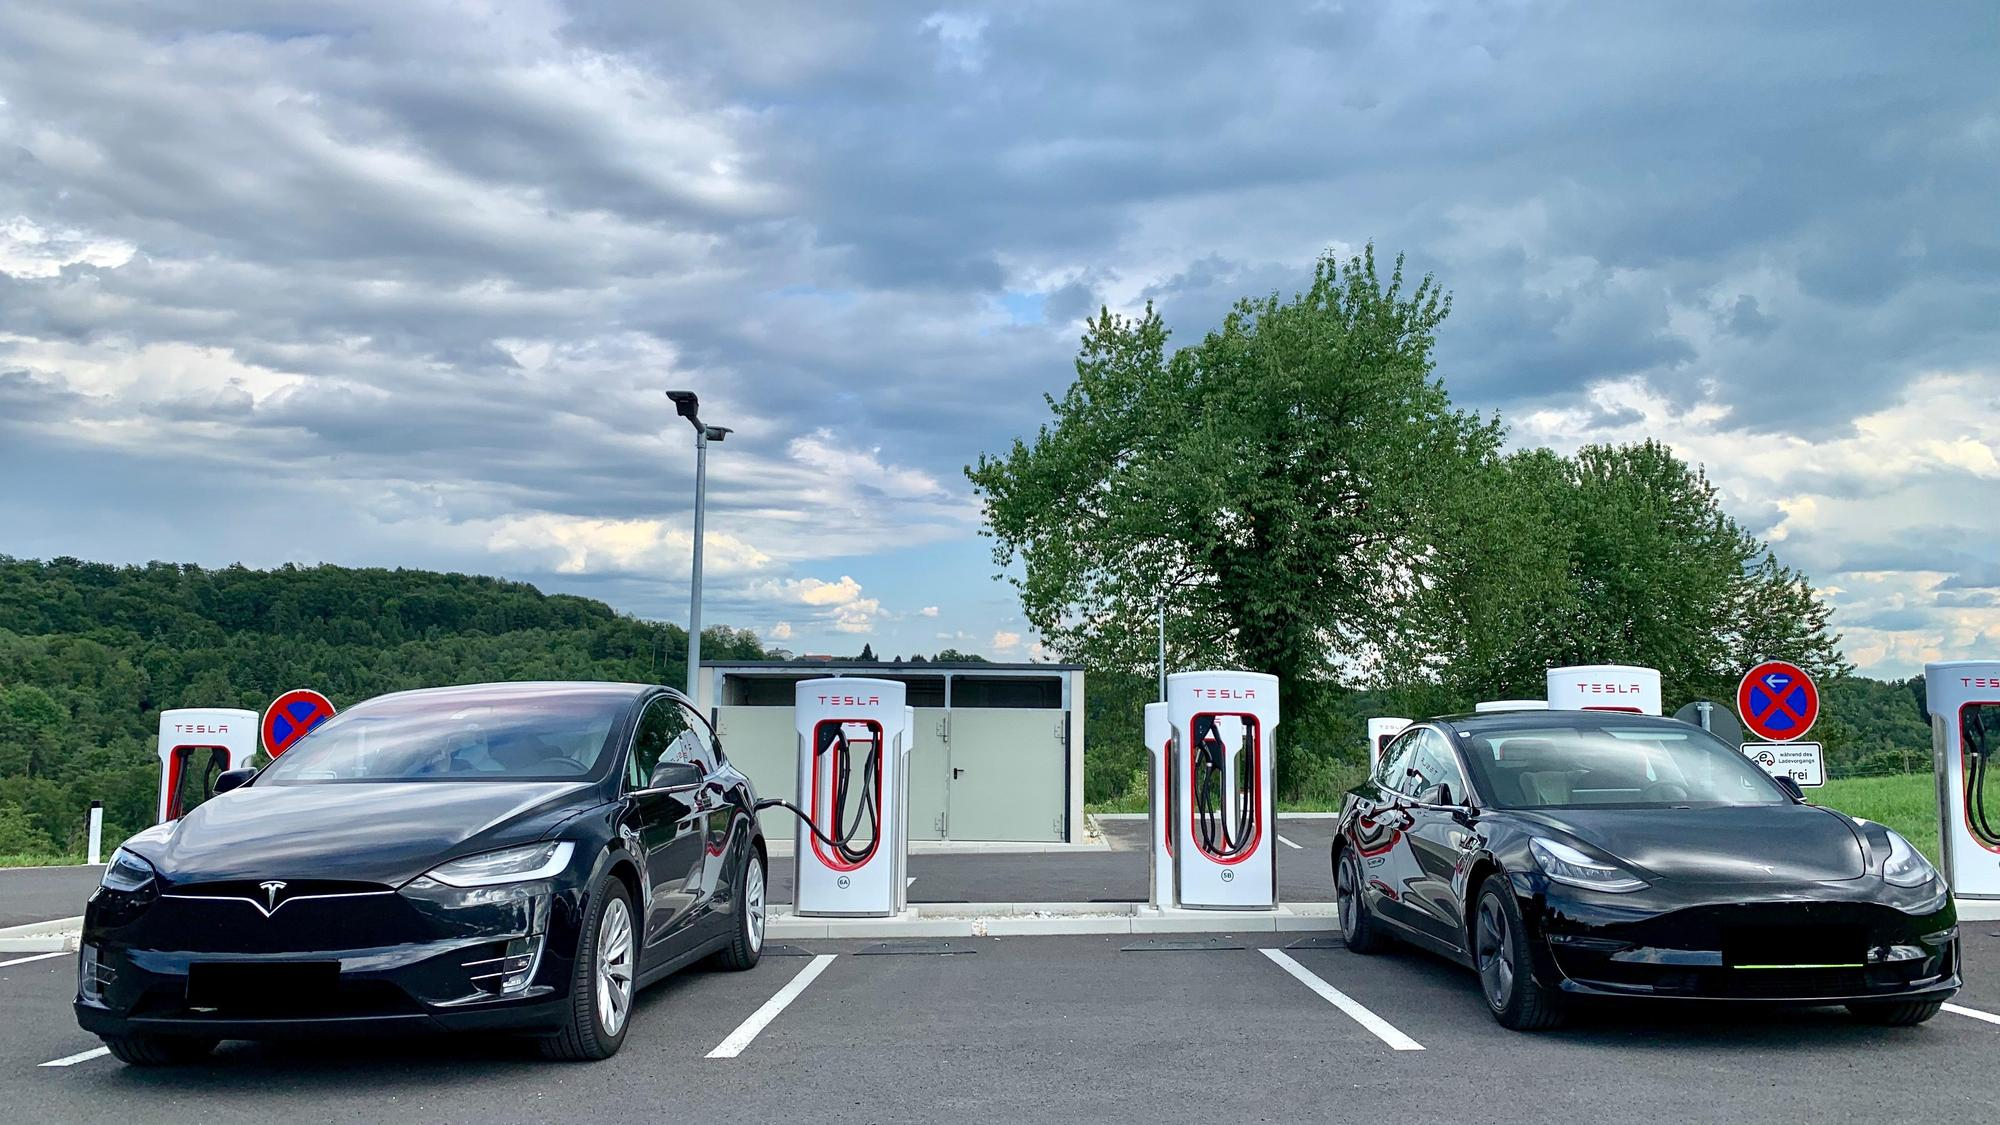 Laßnitzhöhe Supercharger | PlugShare